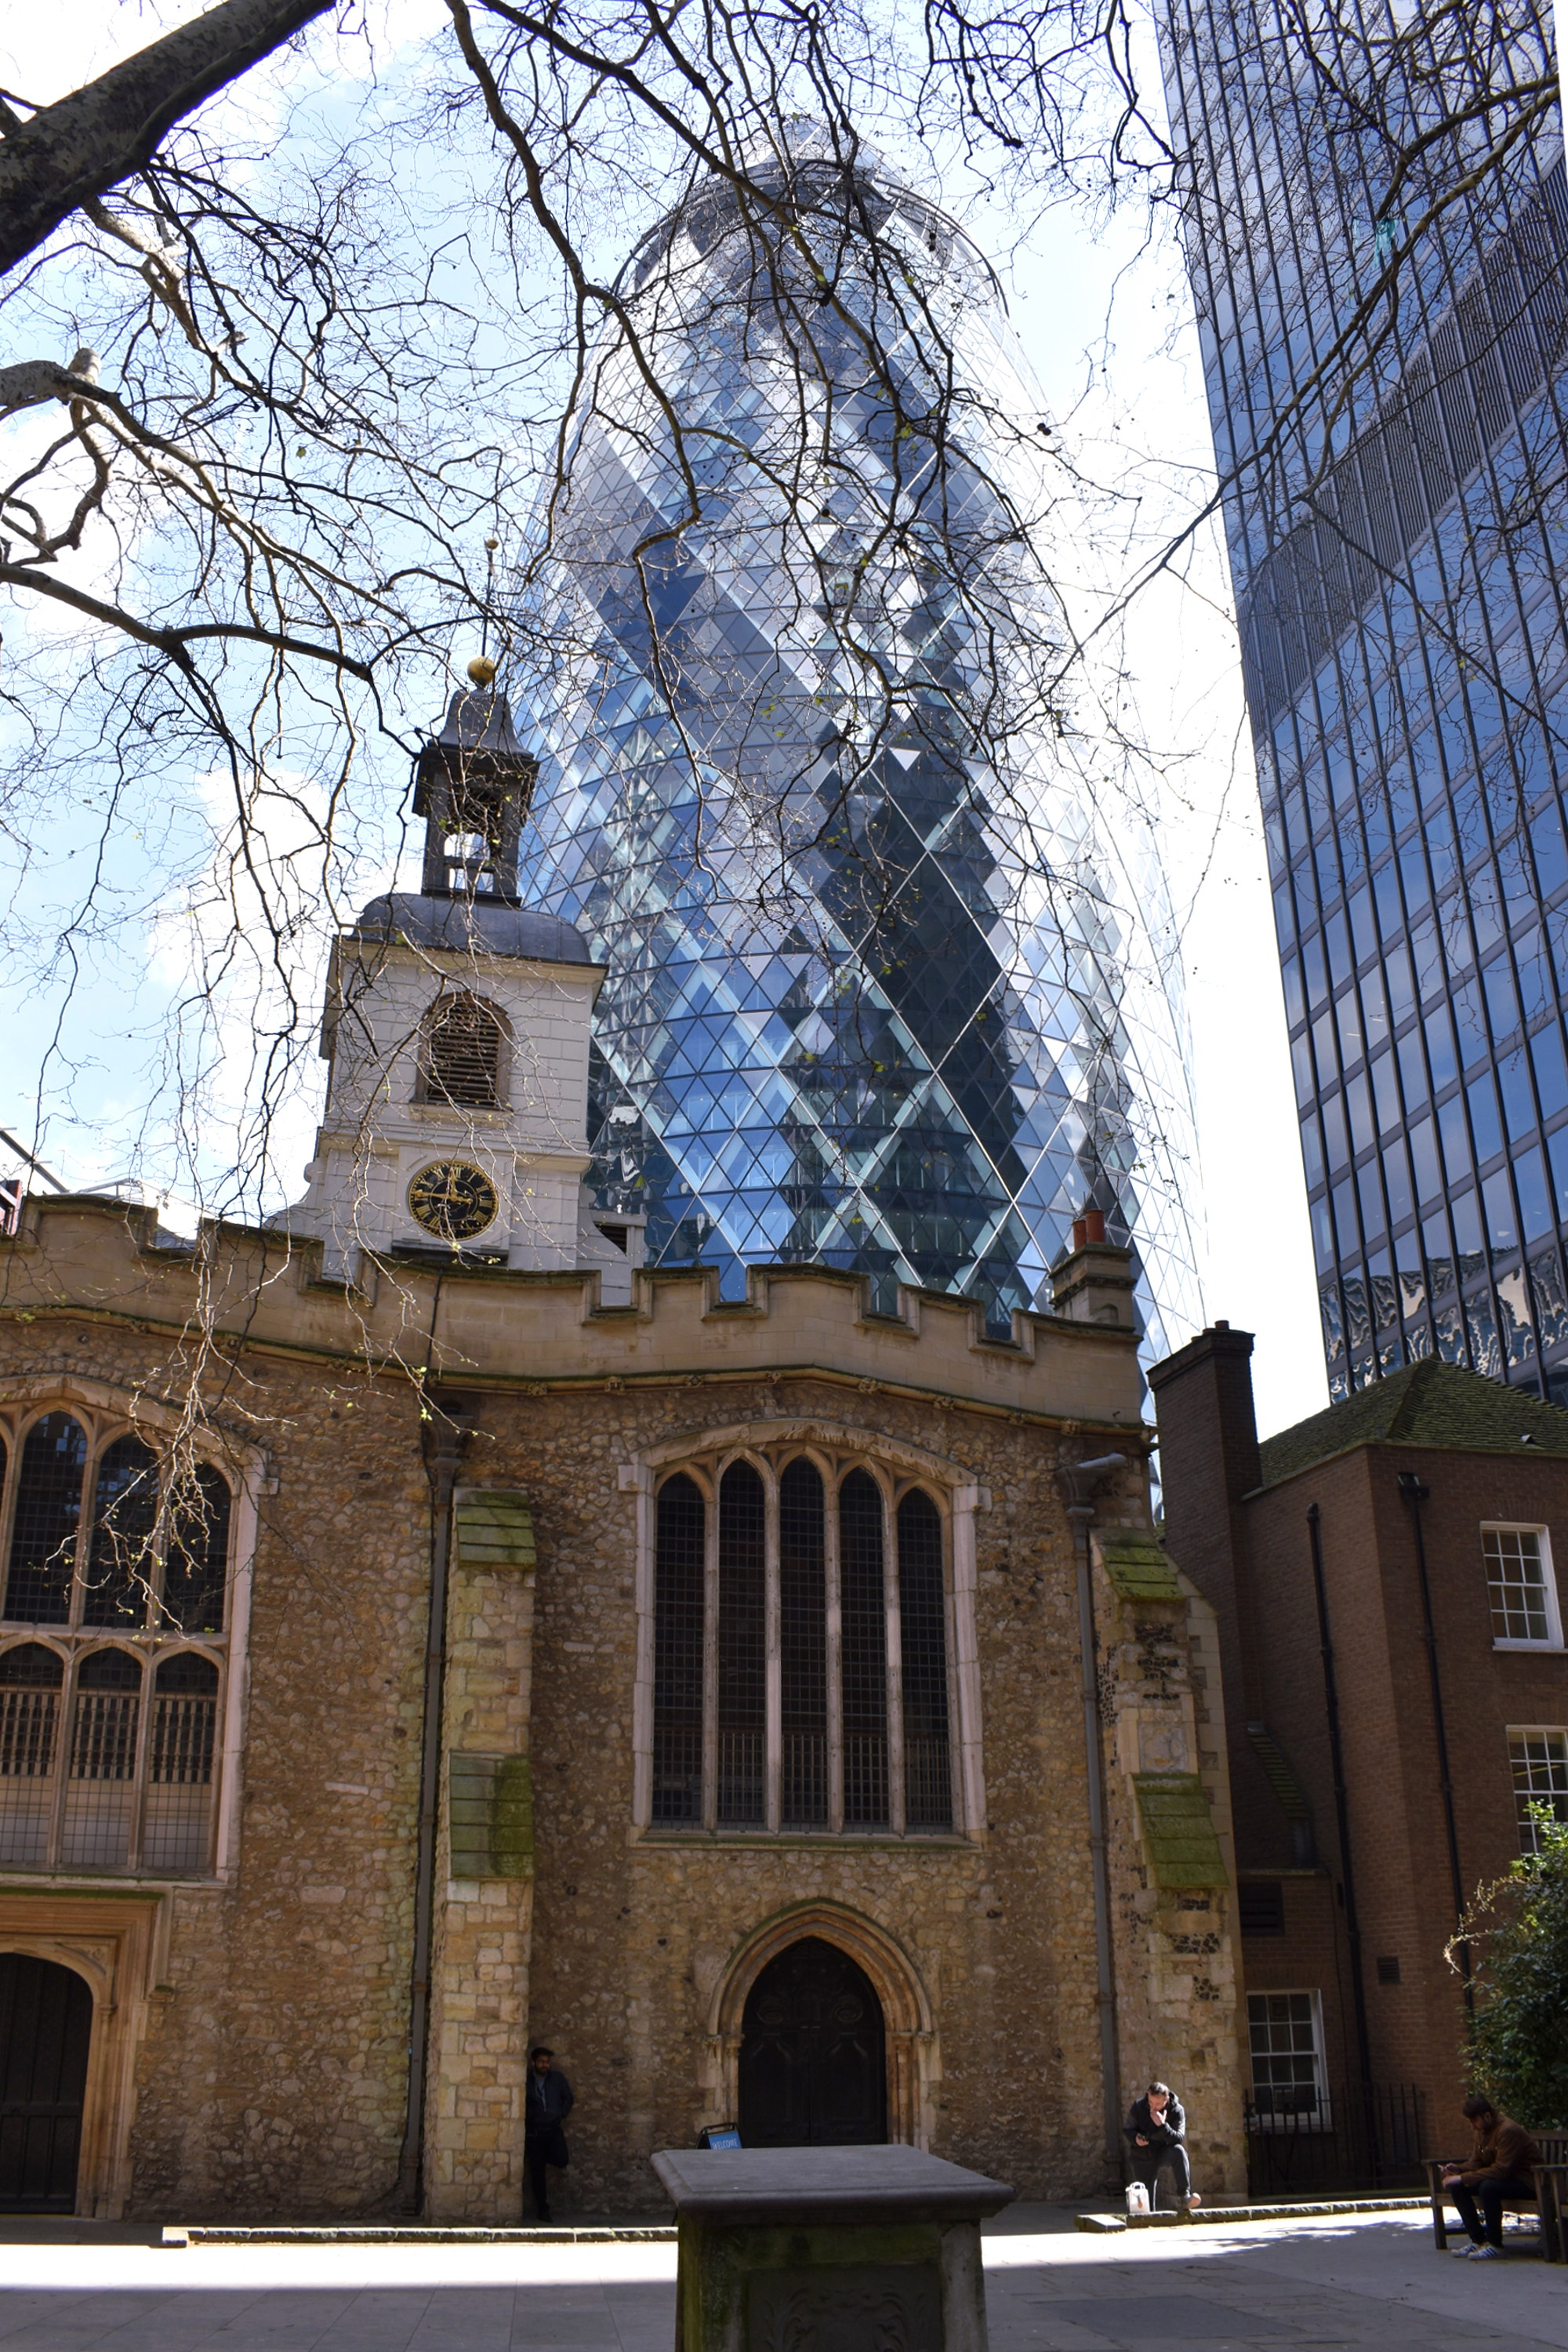 old church building in foreground with blue glass skyscraper behind